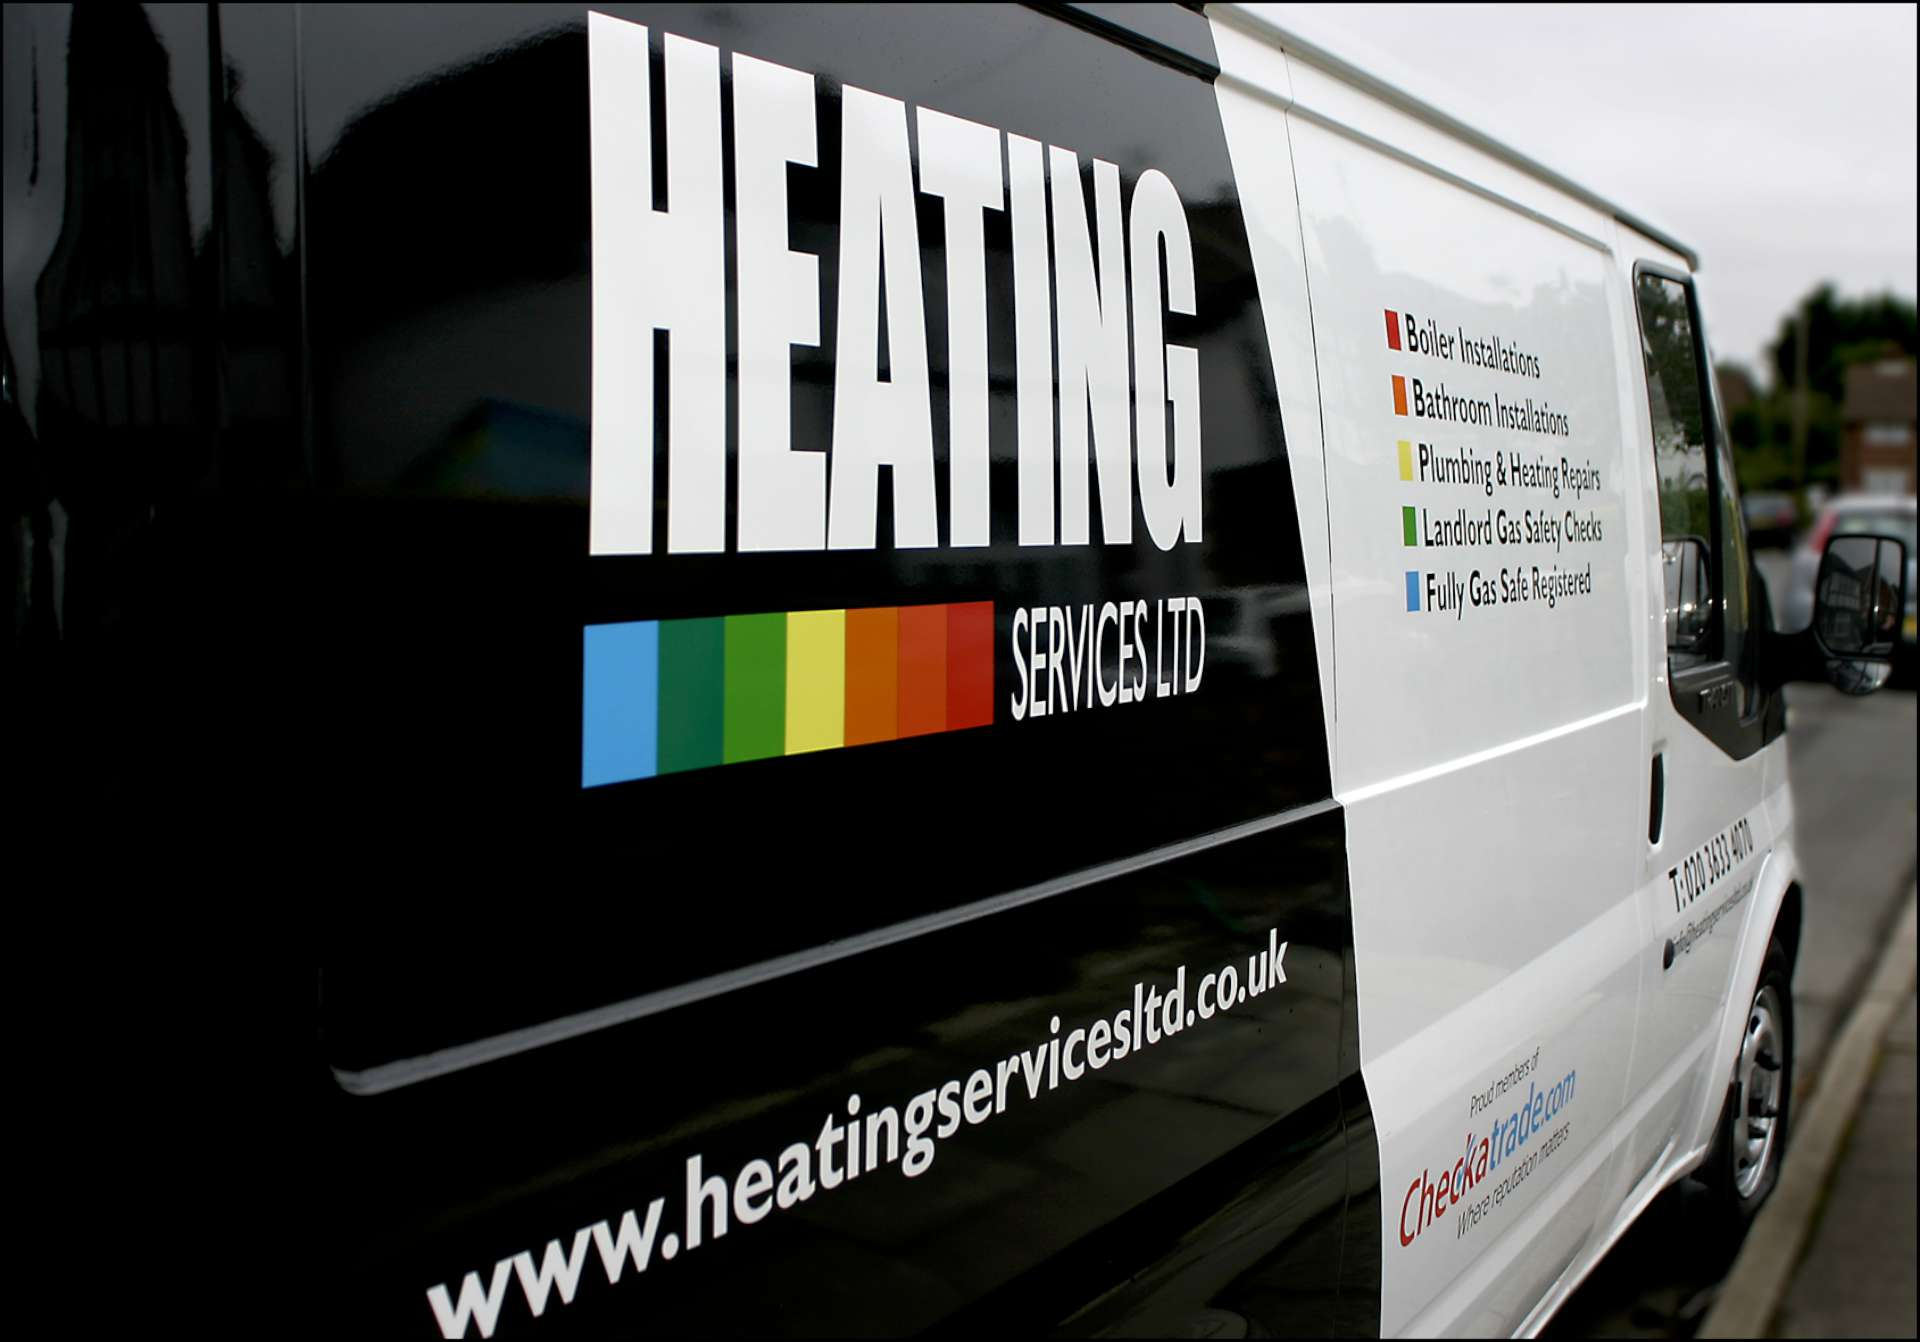 Plumbers Boiler Installation_ Service and Repairs and Bathroom Design and Installation by Heating Services Ltd in Blackheath (2)